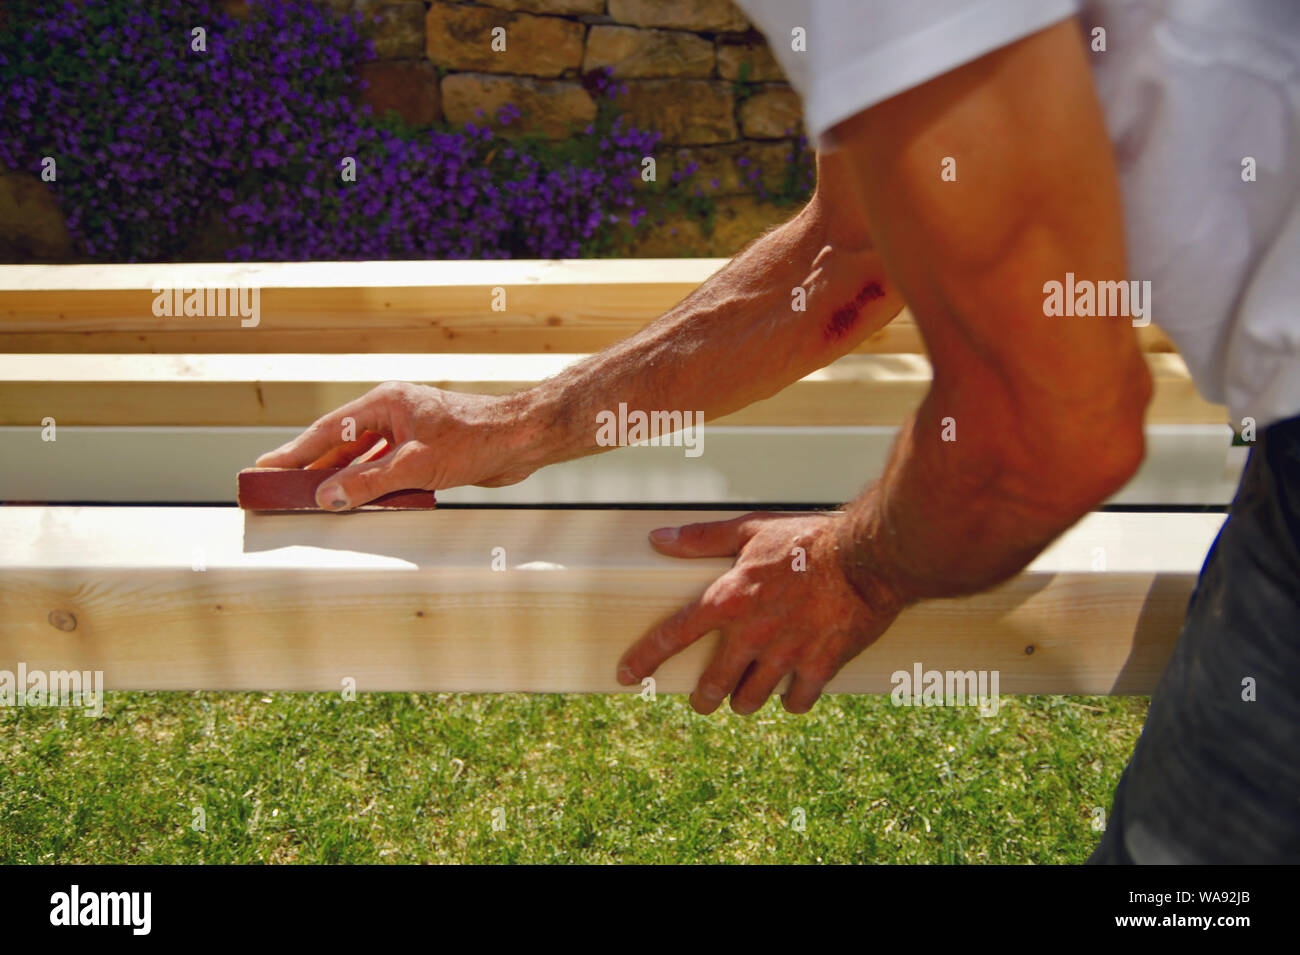 man's hand smoothing natural wooden beam using sandpaper while he is  working outside. Sanding of wood beams spruce for carport. Stock Photo